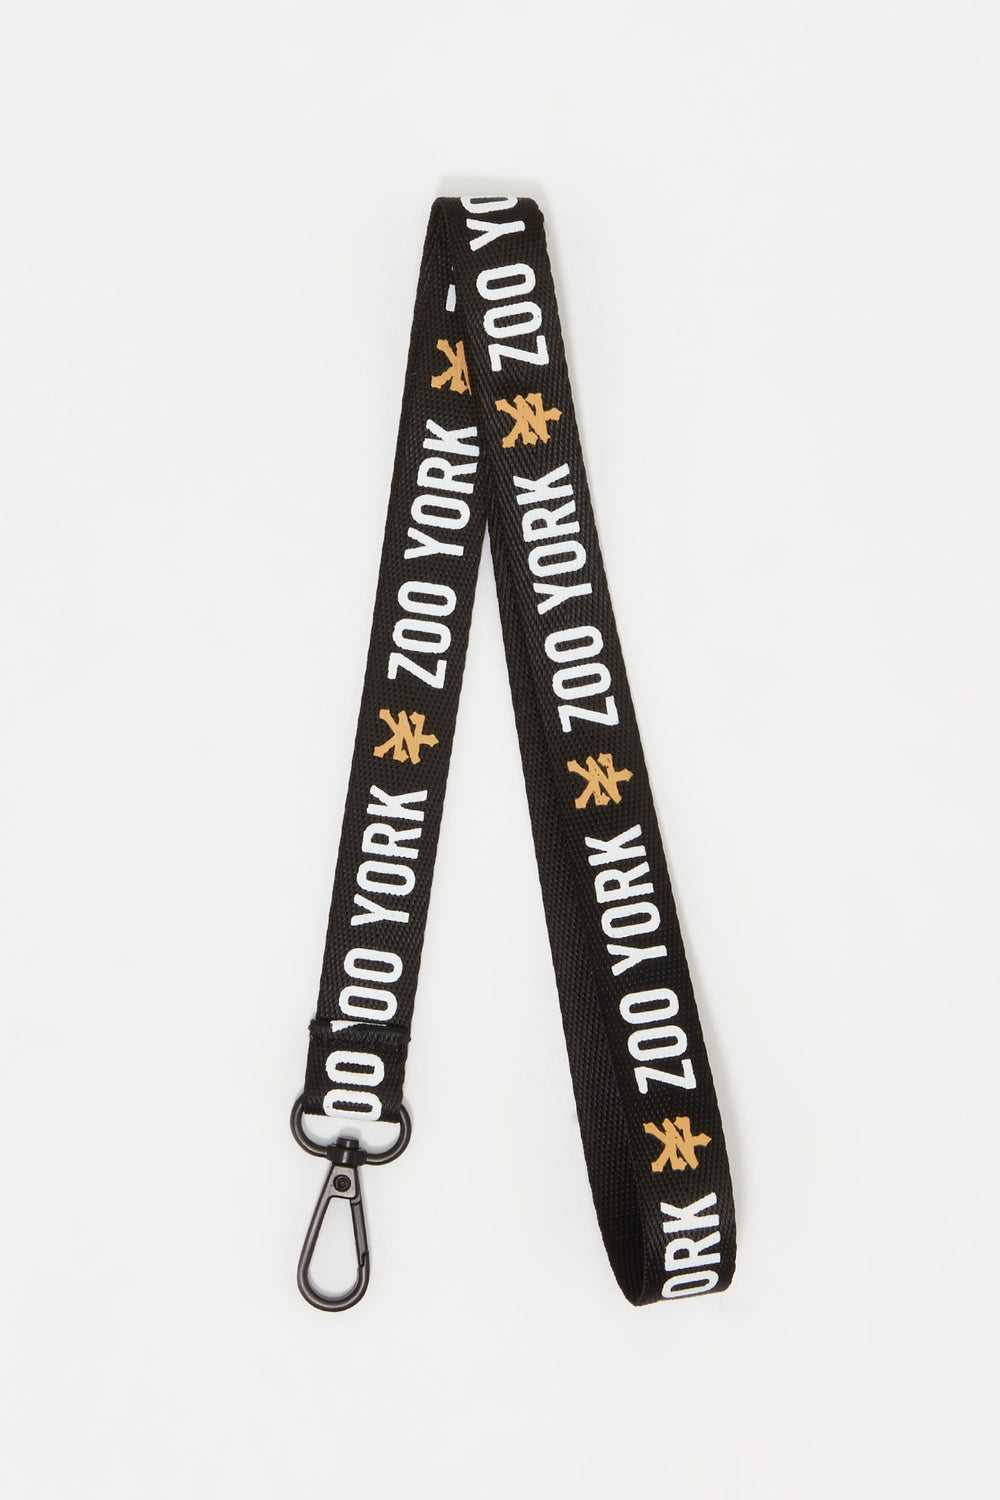 Zoo York Logo Lanyard Black